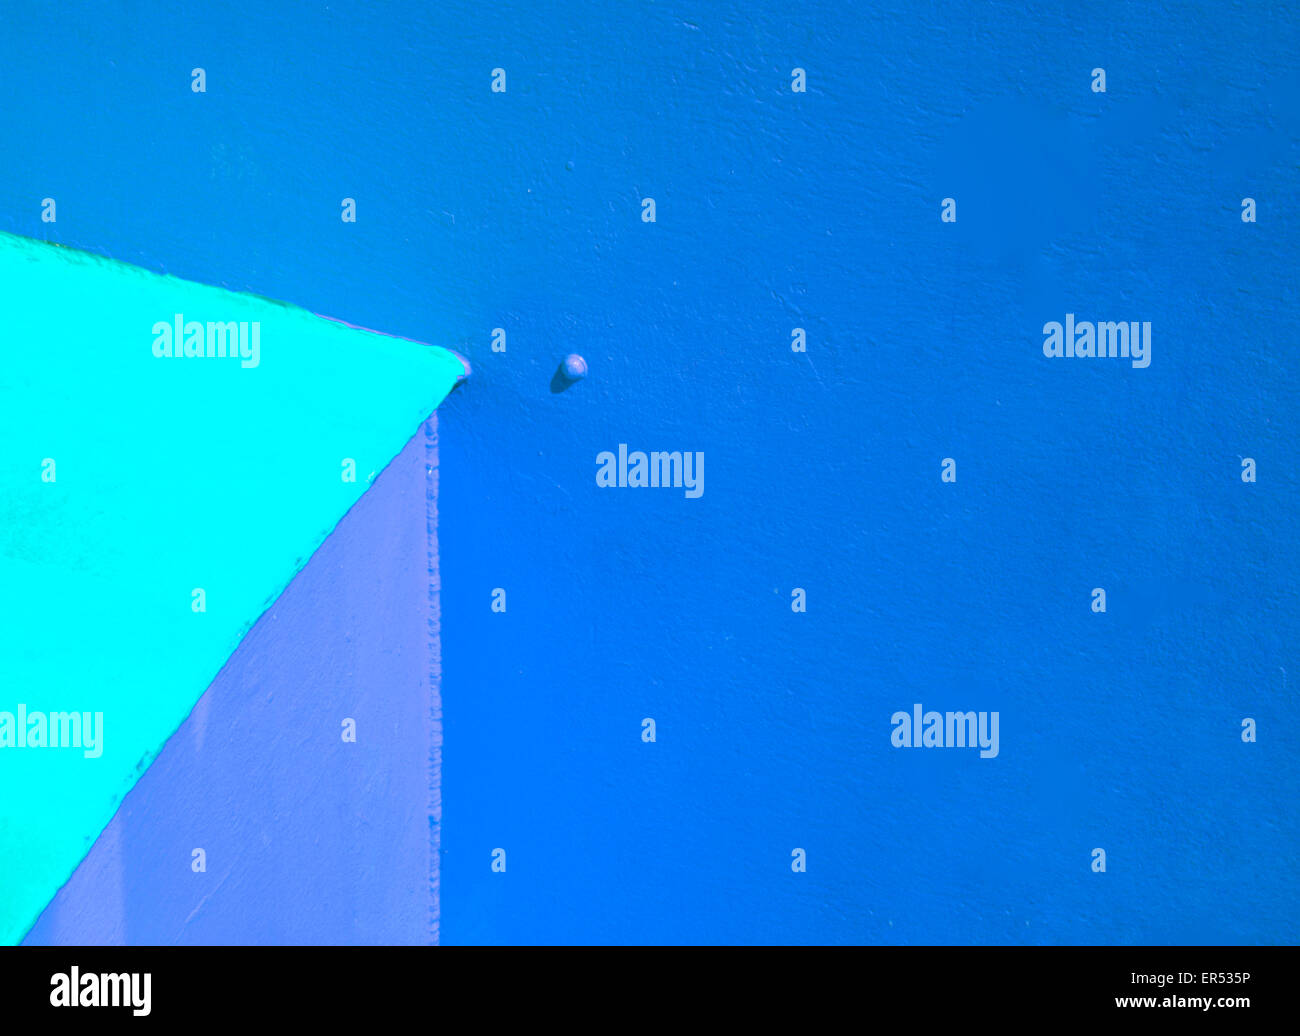 An abstract design in colour and angles based on the blue end of the spectrum. - Stock Image